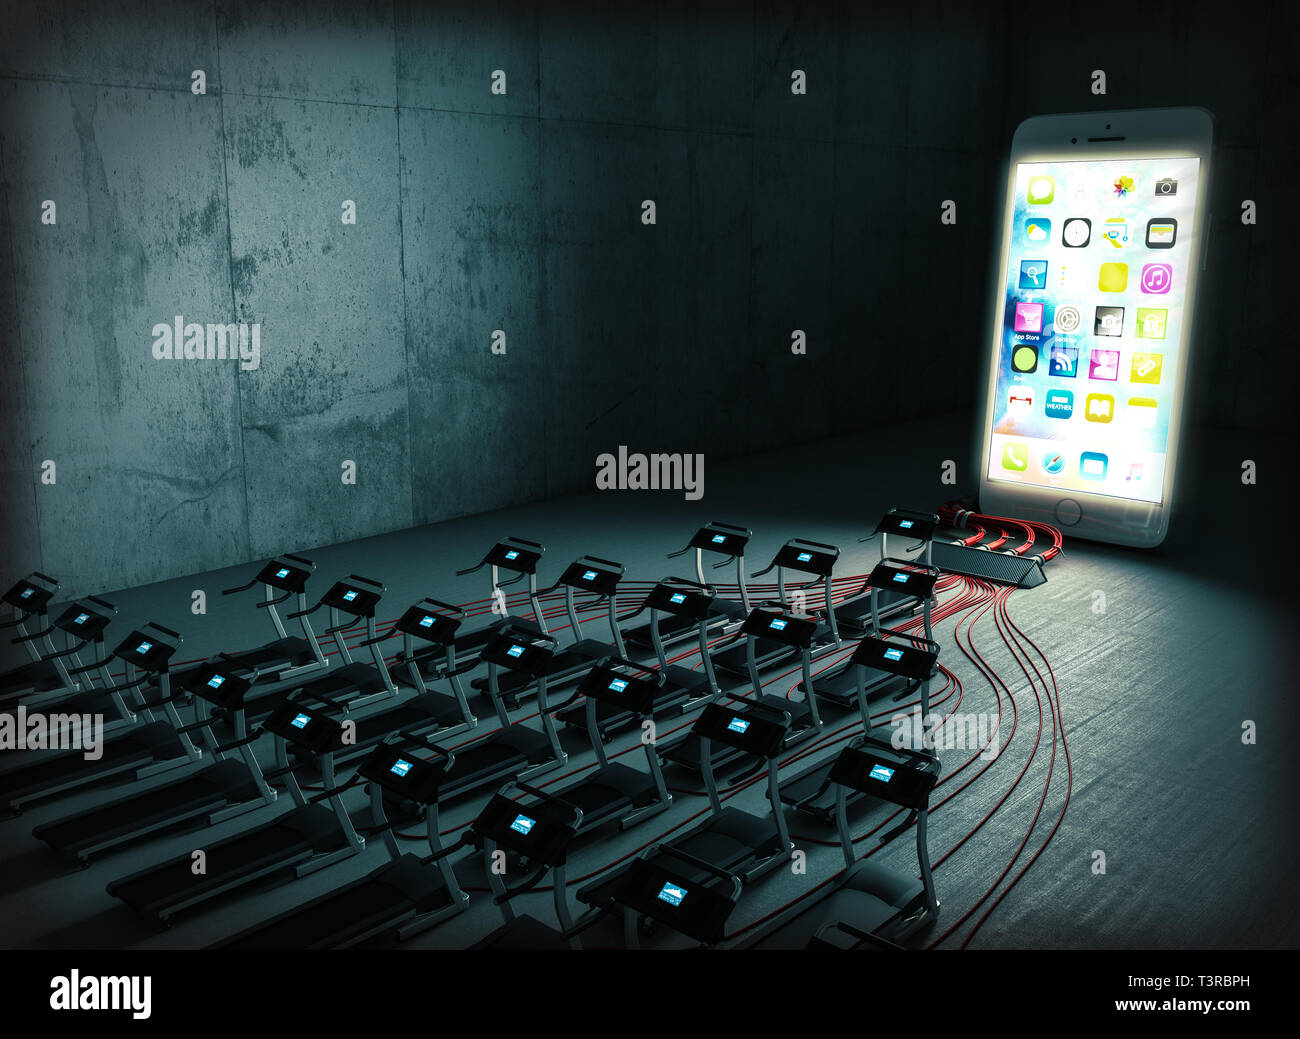 3d rendered image of a series of treadmills that supply energy to a huge smartphone, grunge architecture background. Technology addiction and slavery  - Stock Image